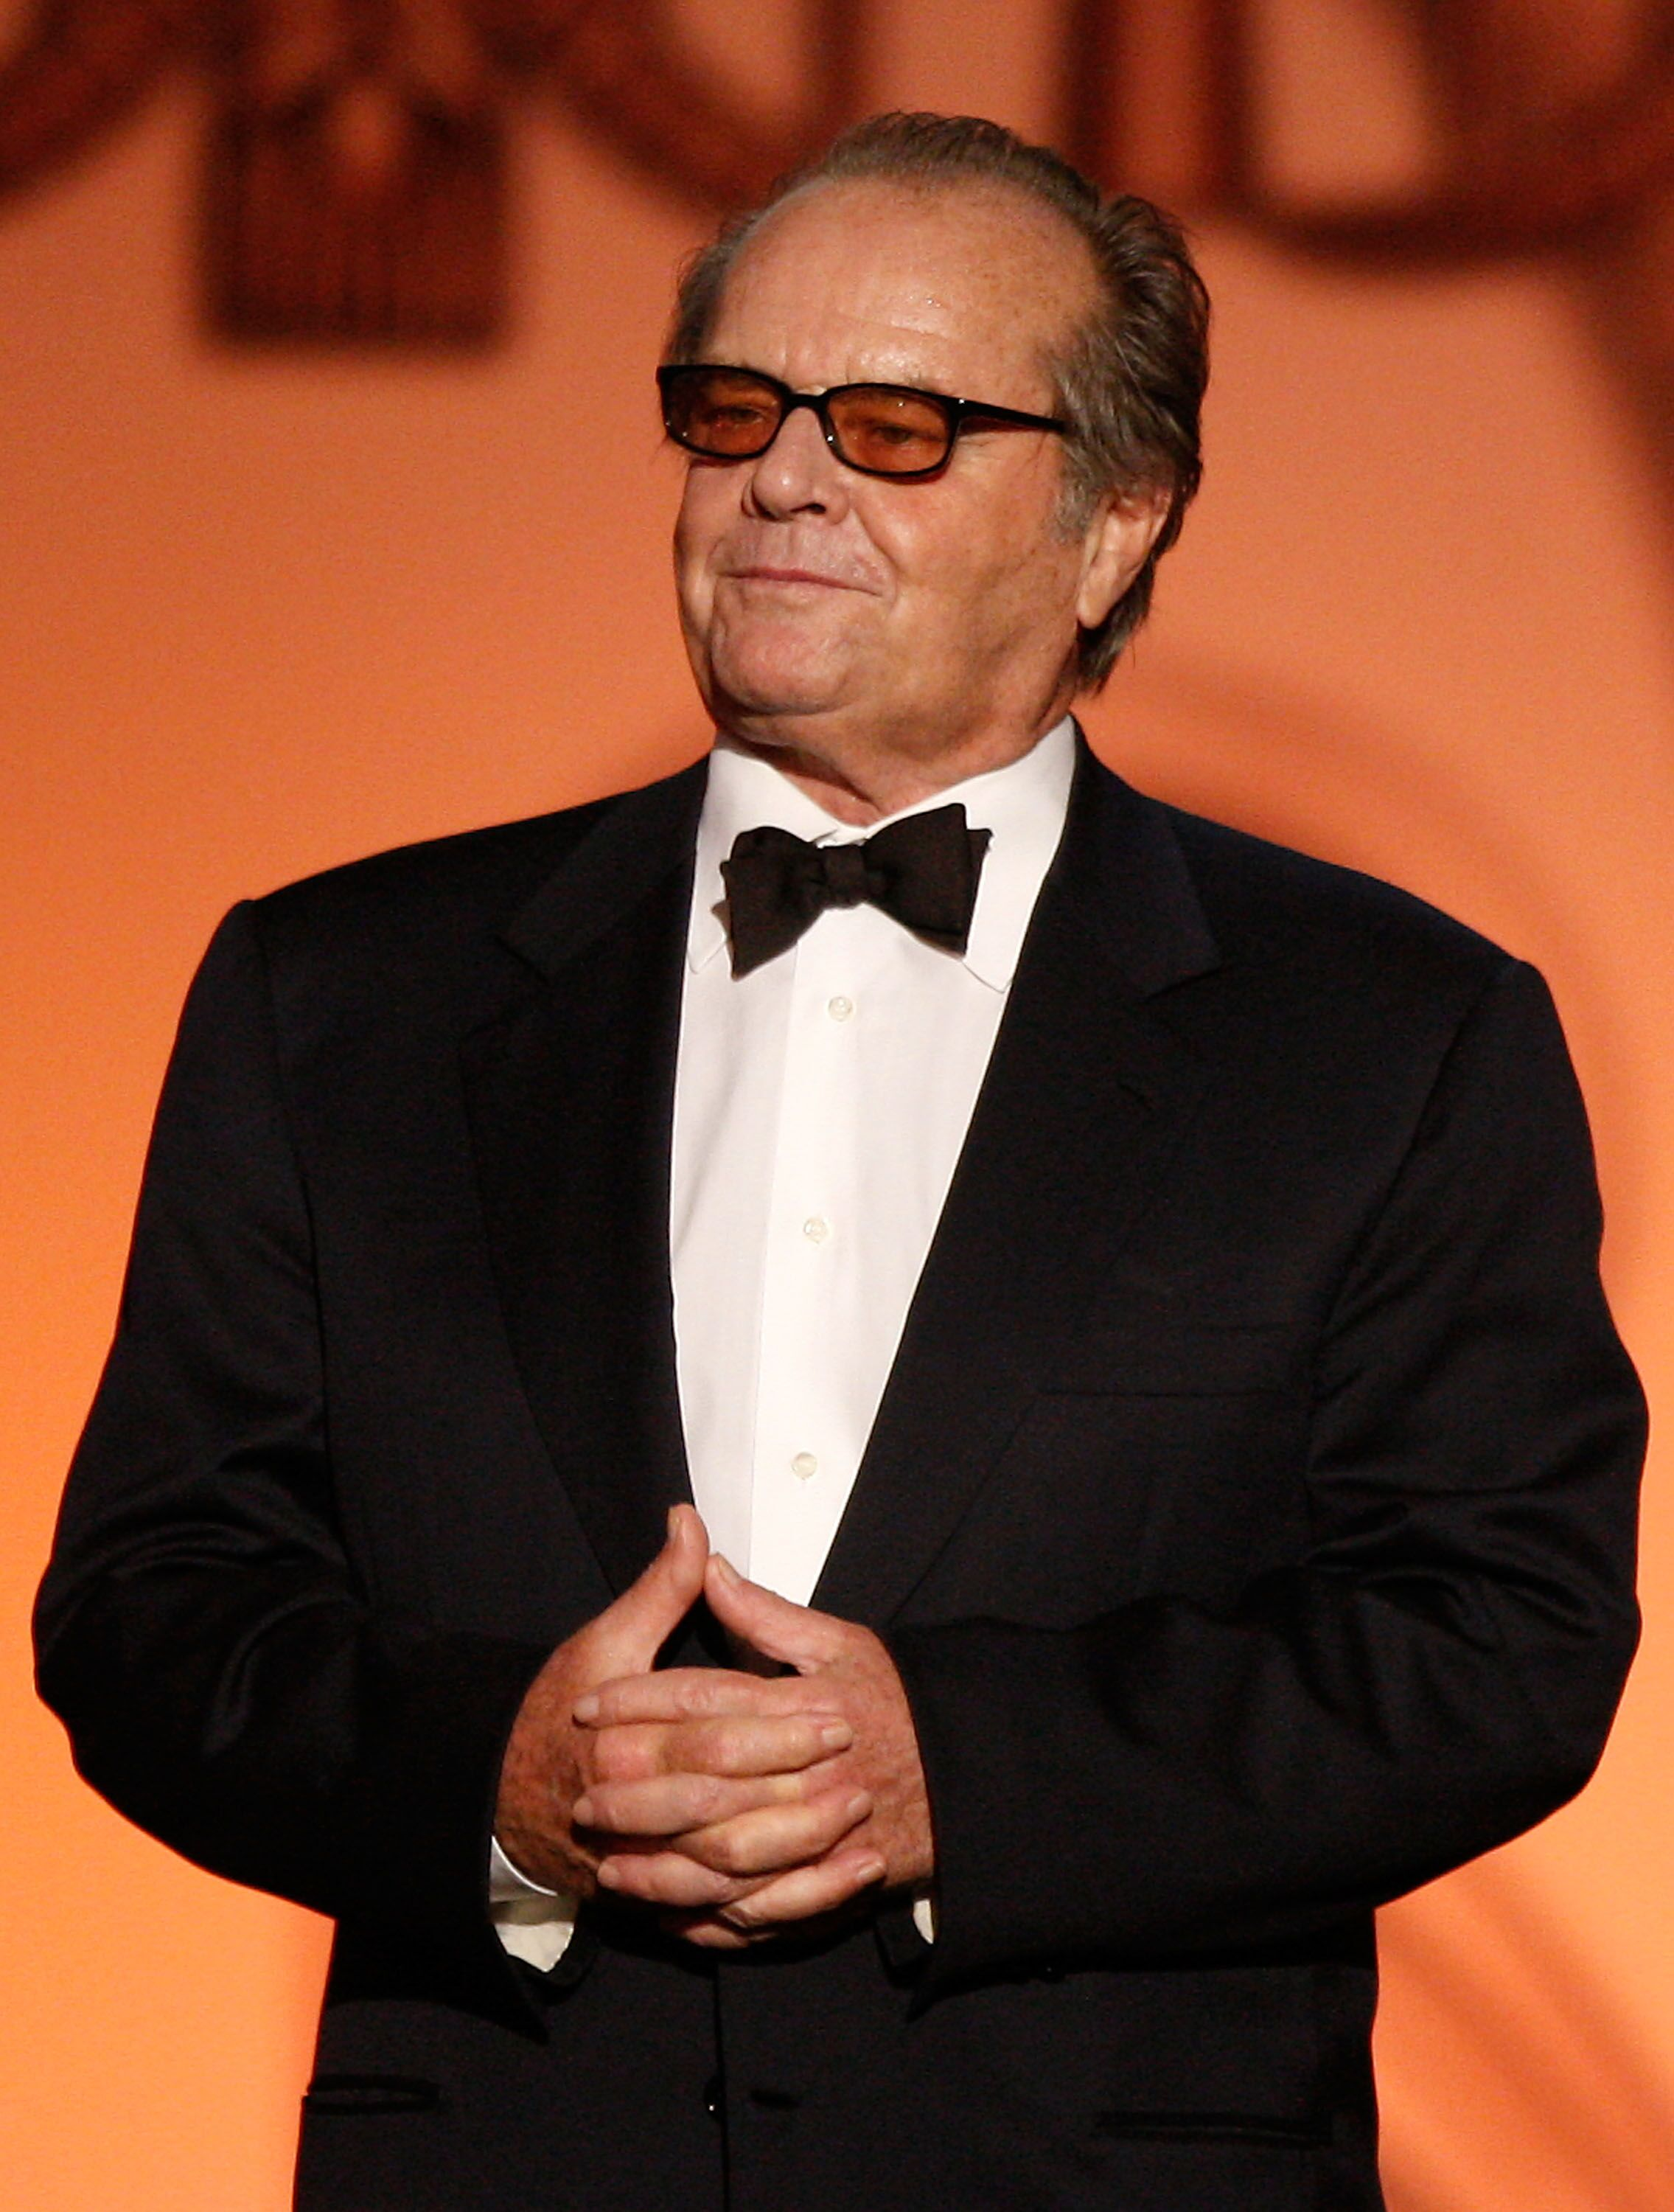 Jack Nicholson speaks onstage during the AFI Life Achievement Award: A Tribute to Michael Douglas | Getty Images